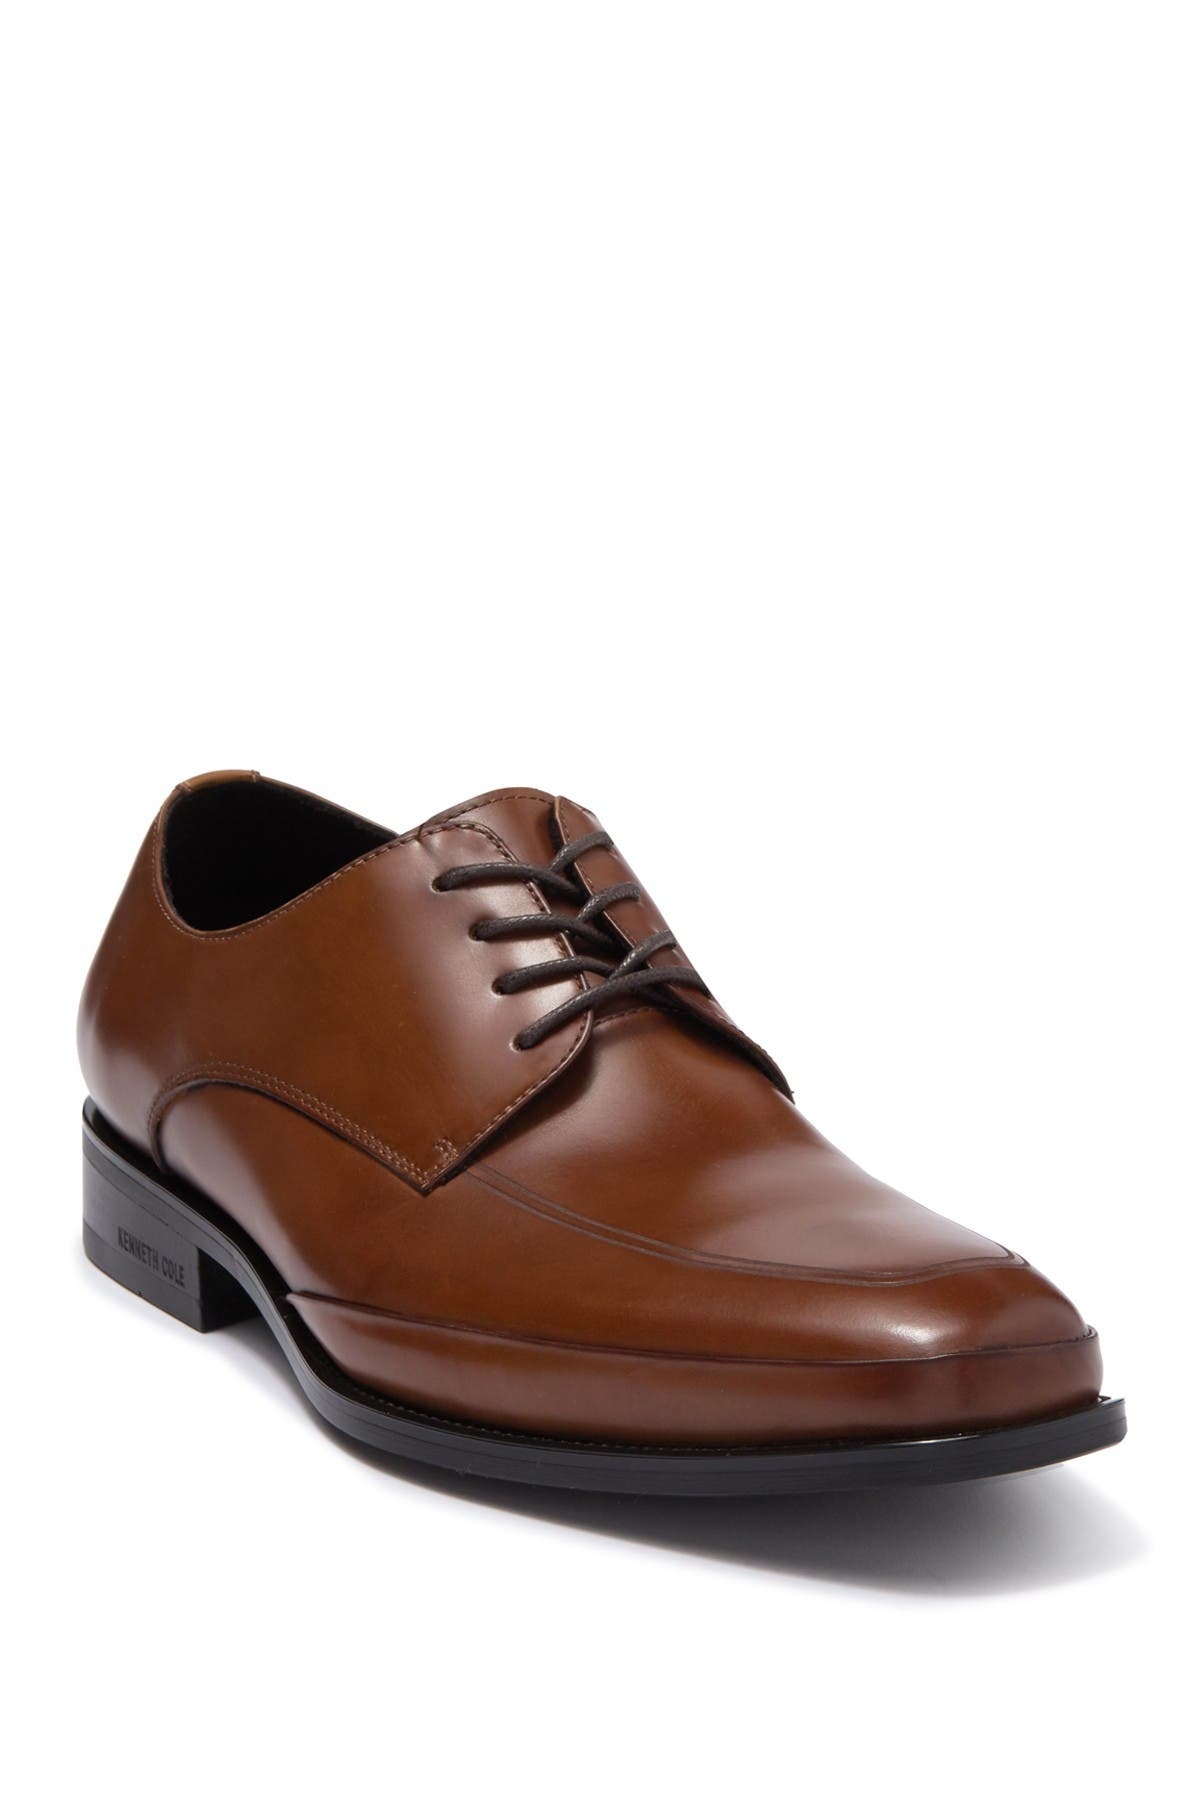 Image of Kenneth Cole New York Leisure Lace-Up Derby